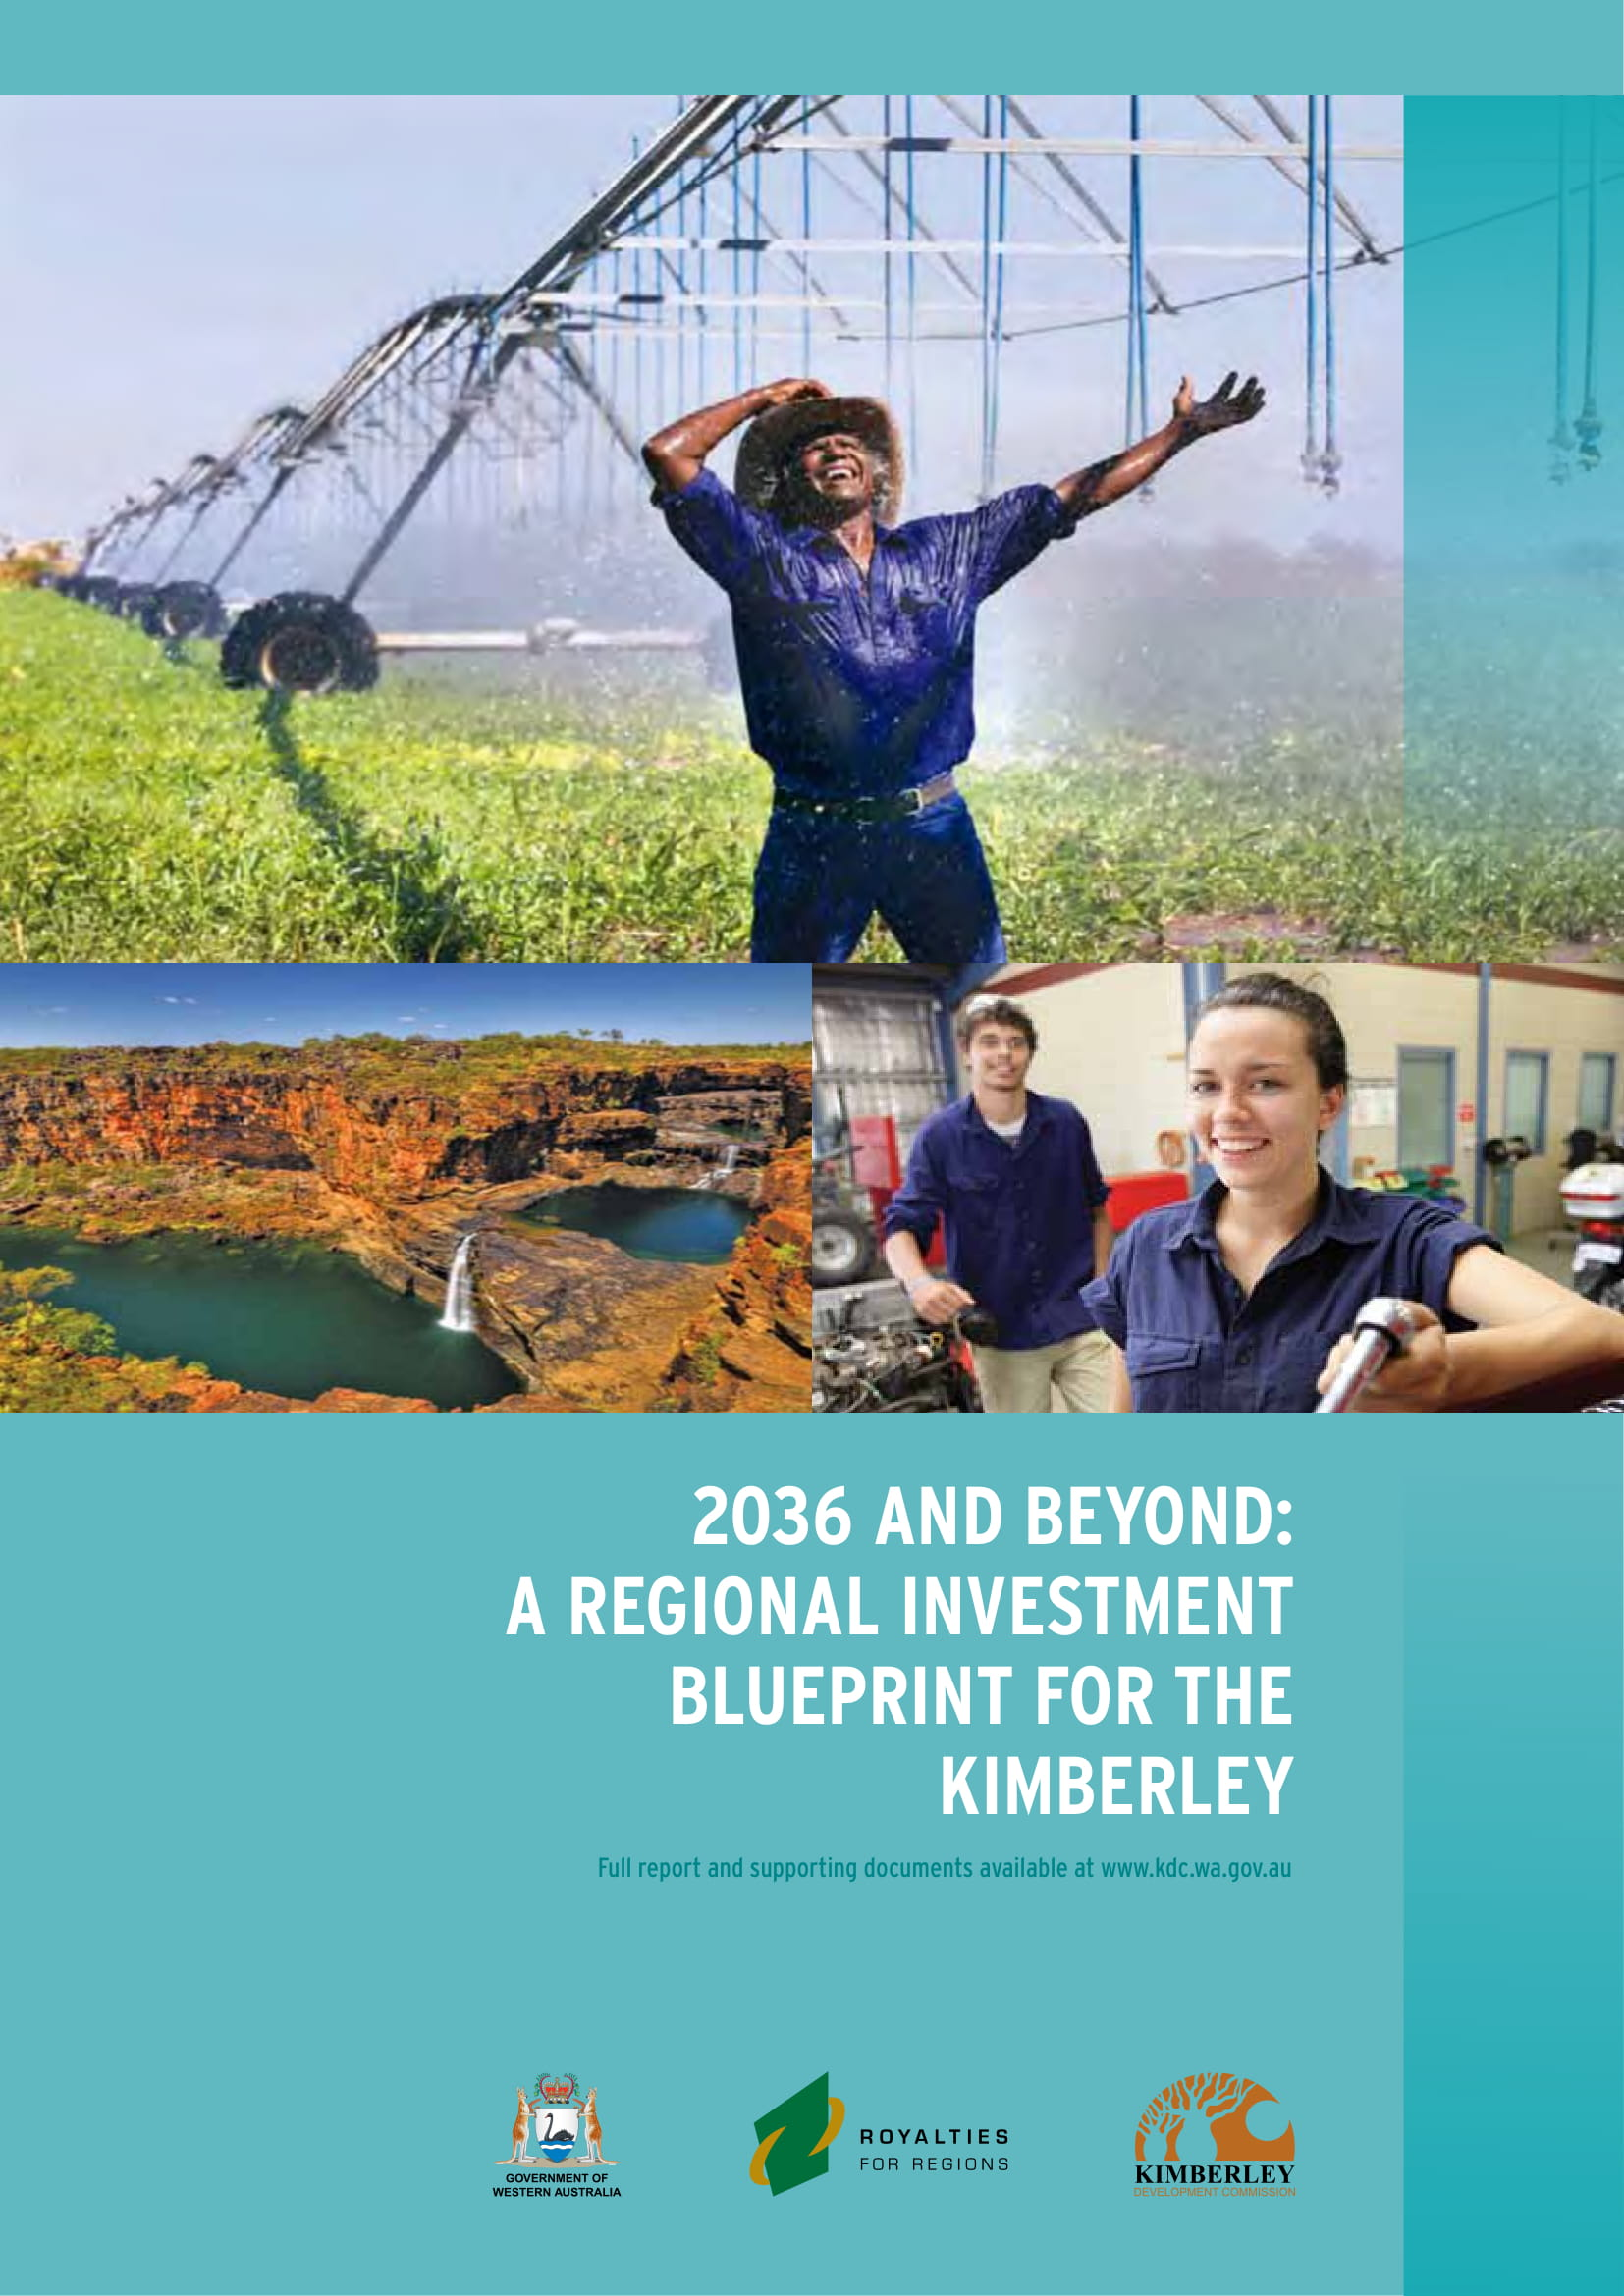 036-and-Beyond-A-Regional-Investment-Blueprint-for-the-Kimberley